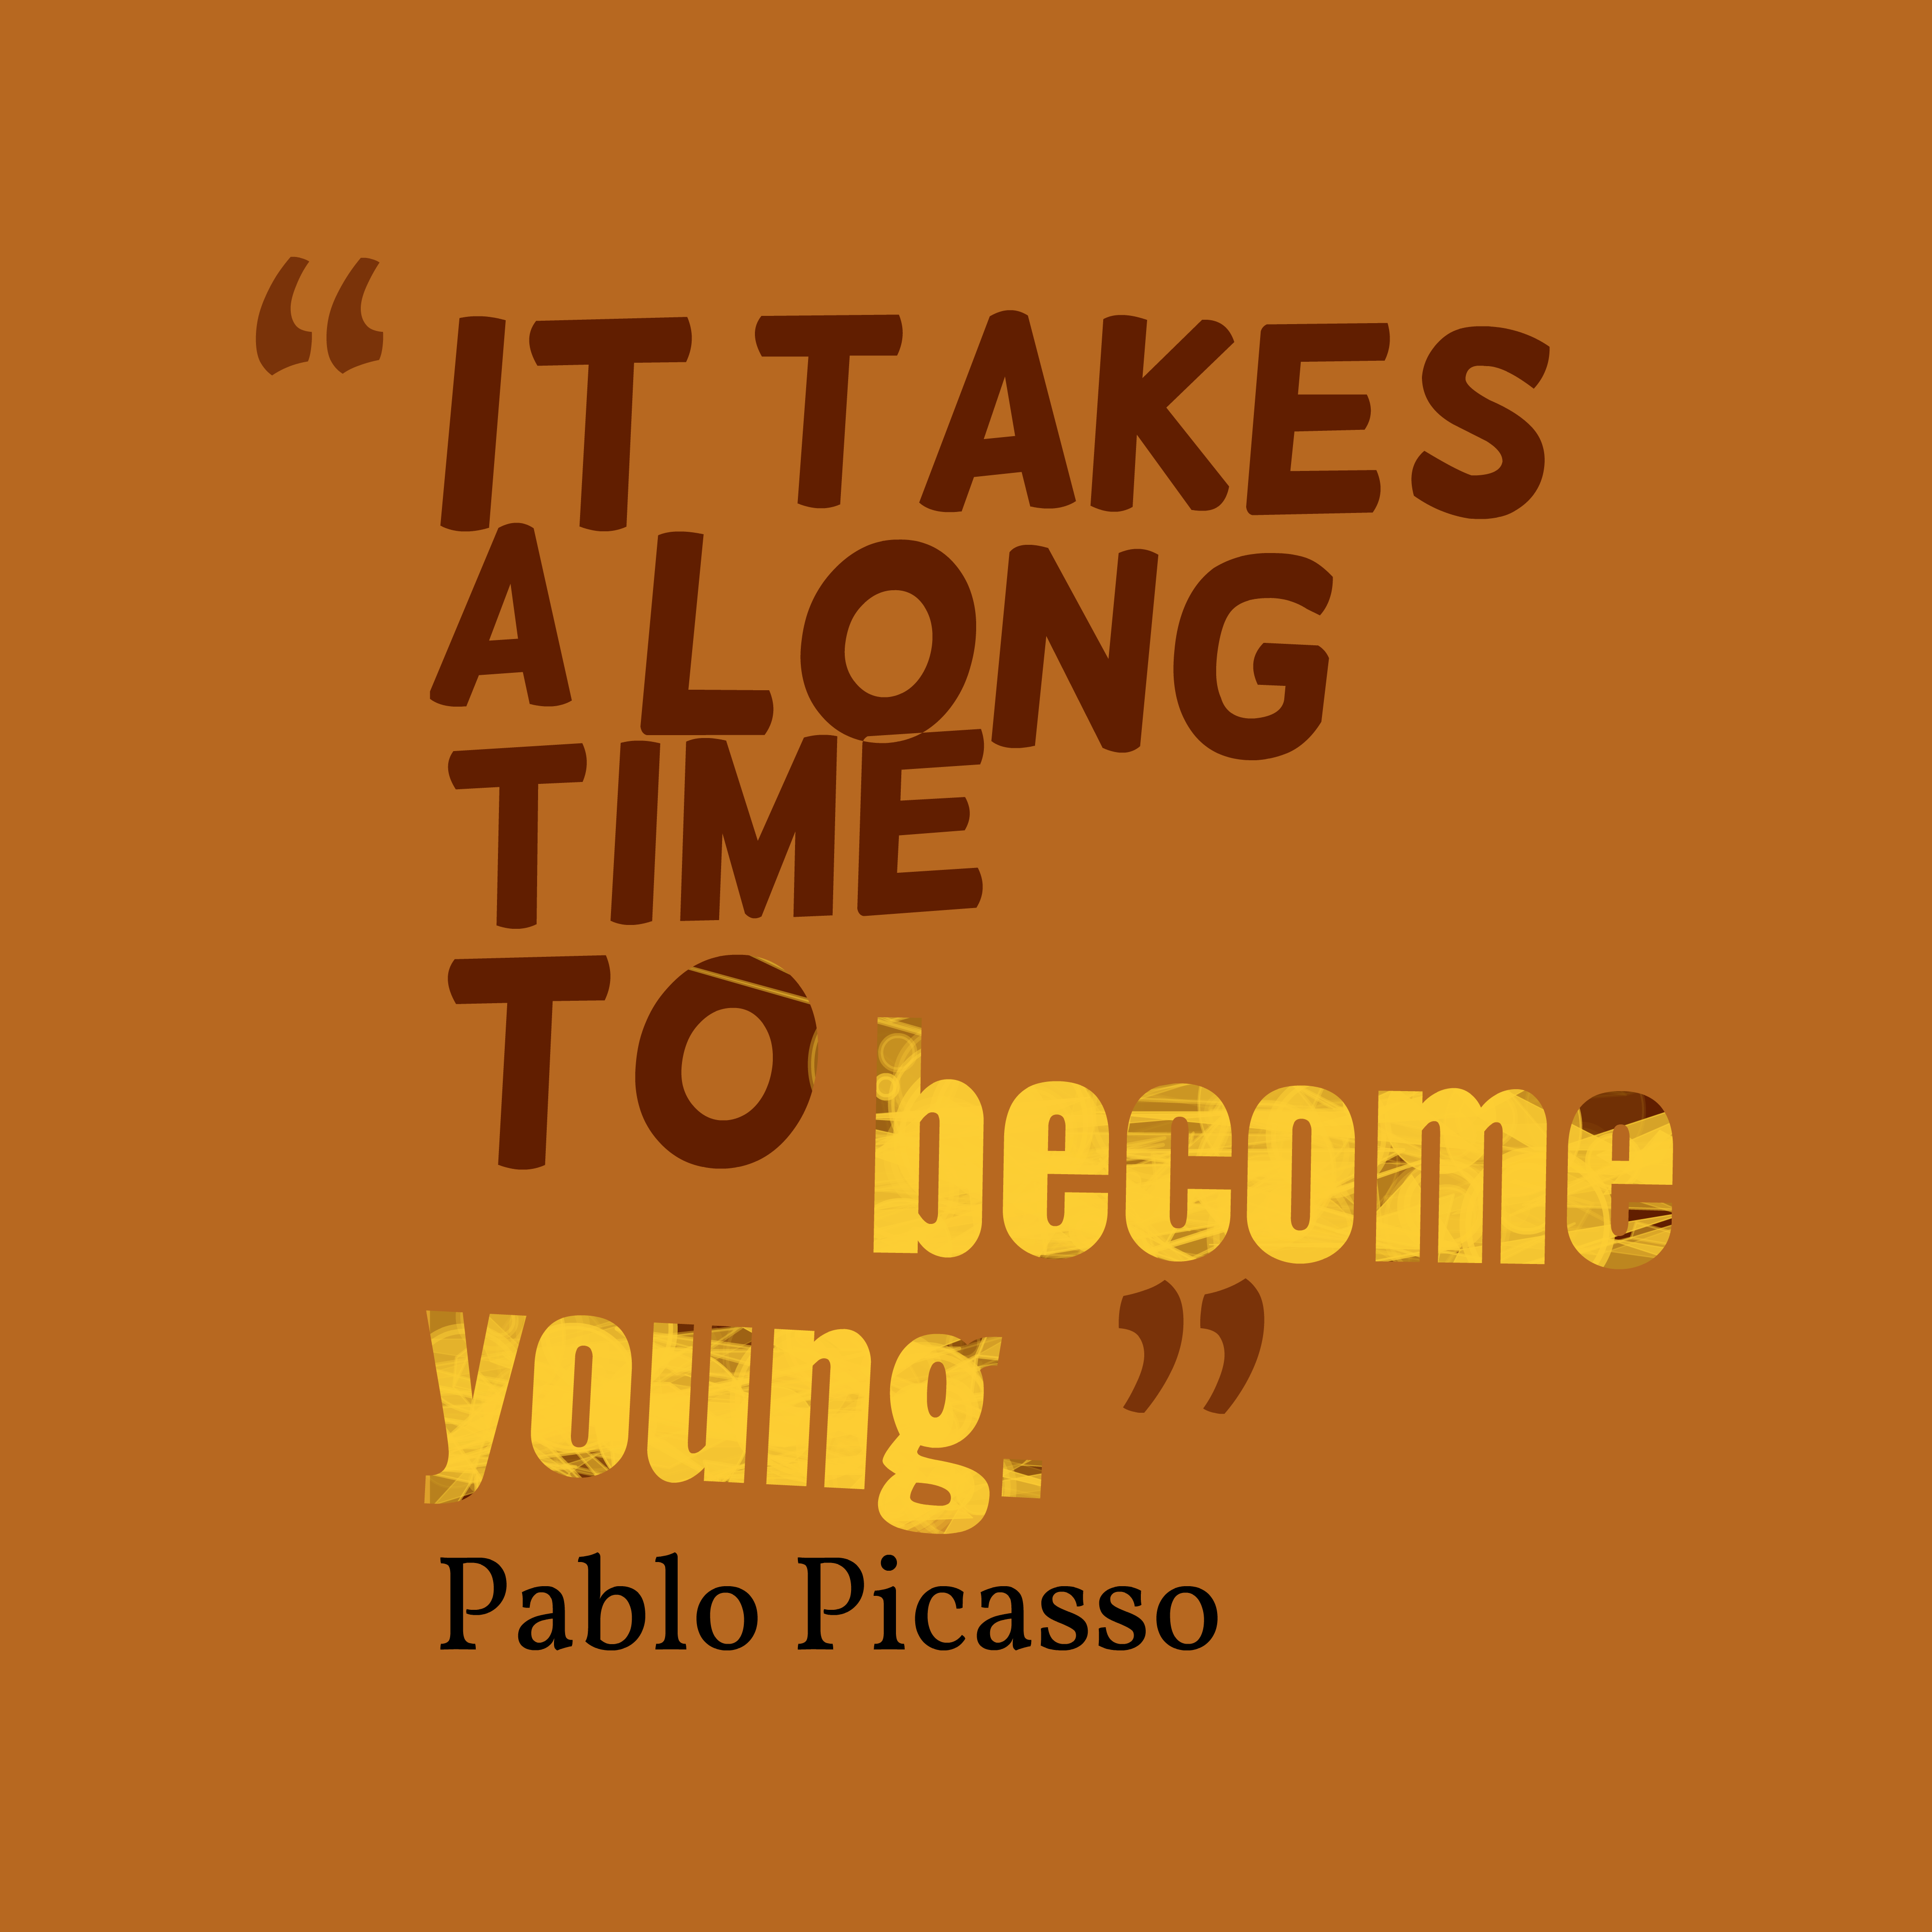 Pablo Picasso Quote About Time